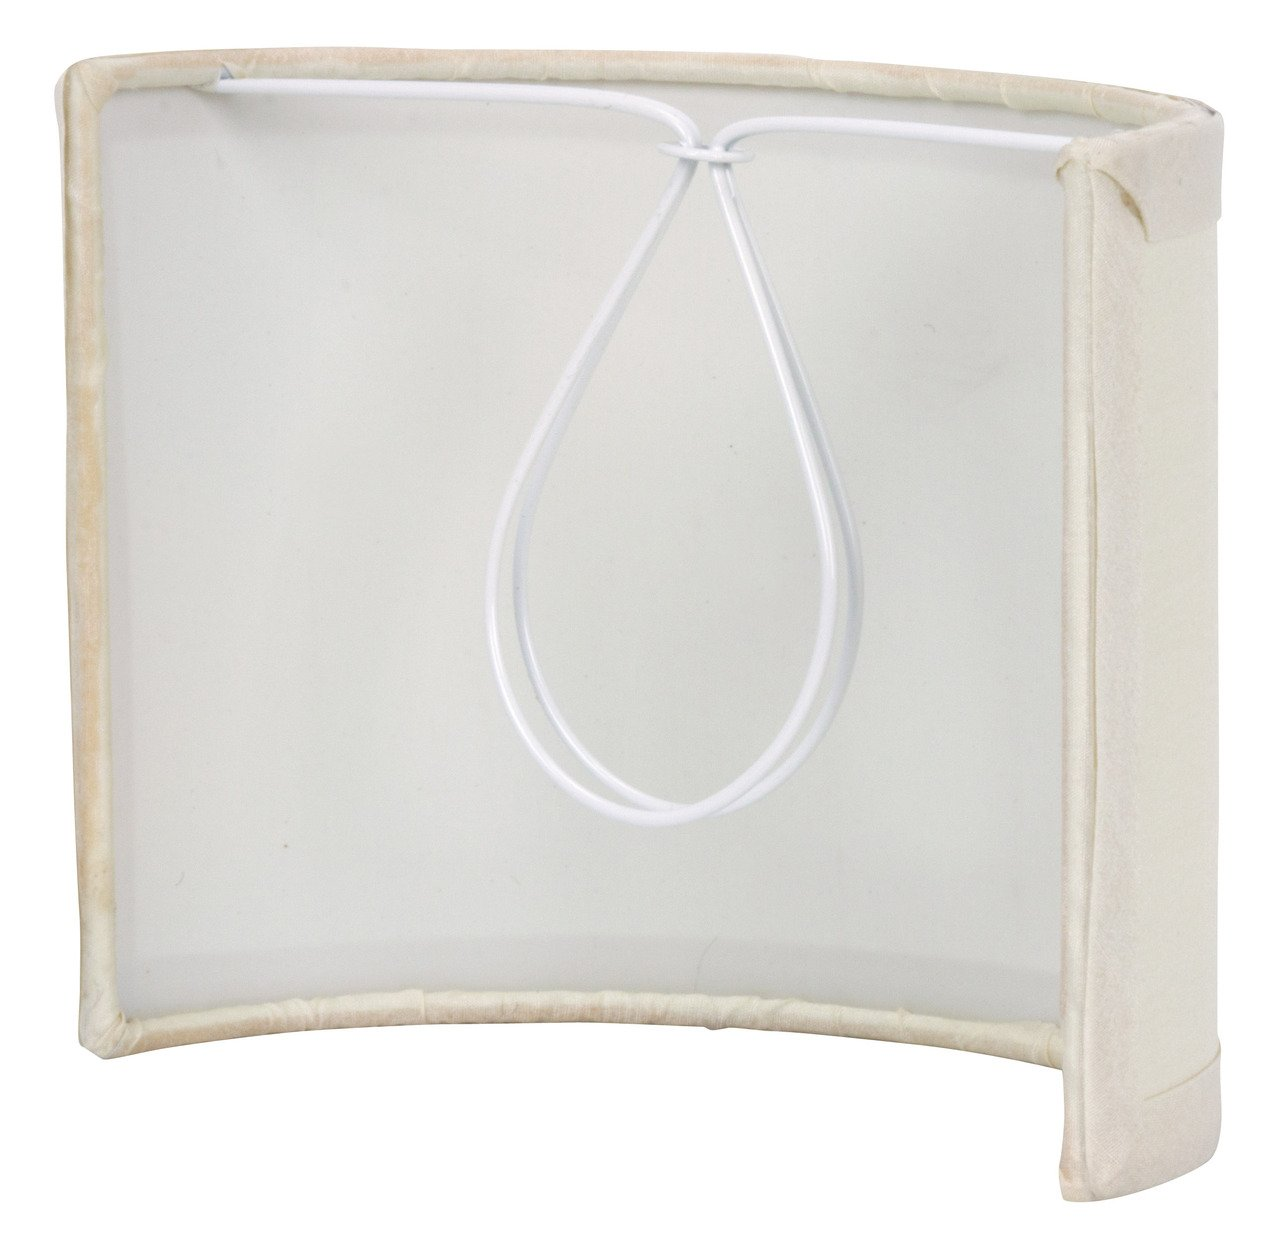 Upgradelights 5 Inch Tall Wall Sconce Clip on Shield Lamp Shade (Chandelier Half Shade)